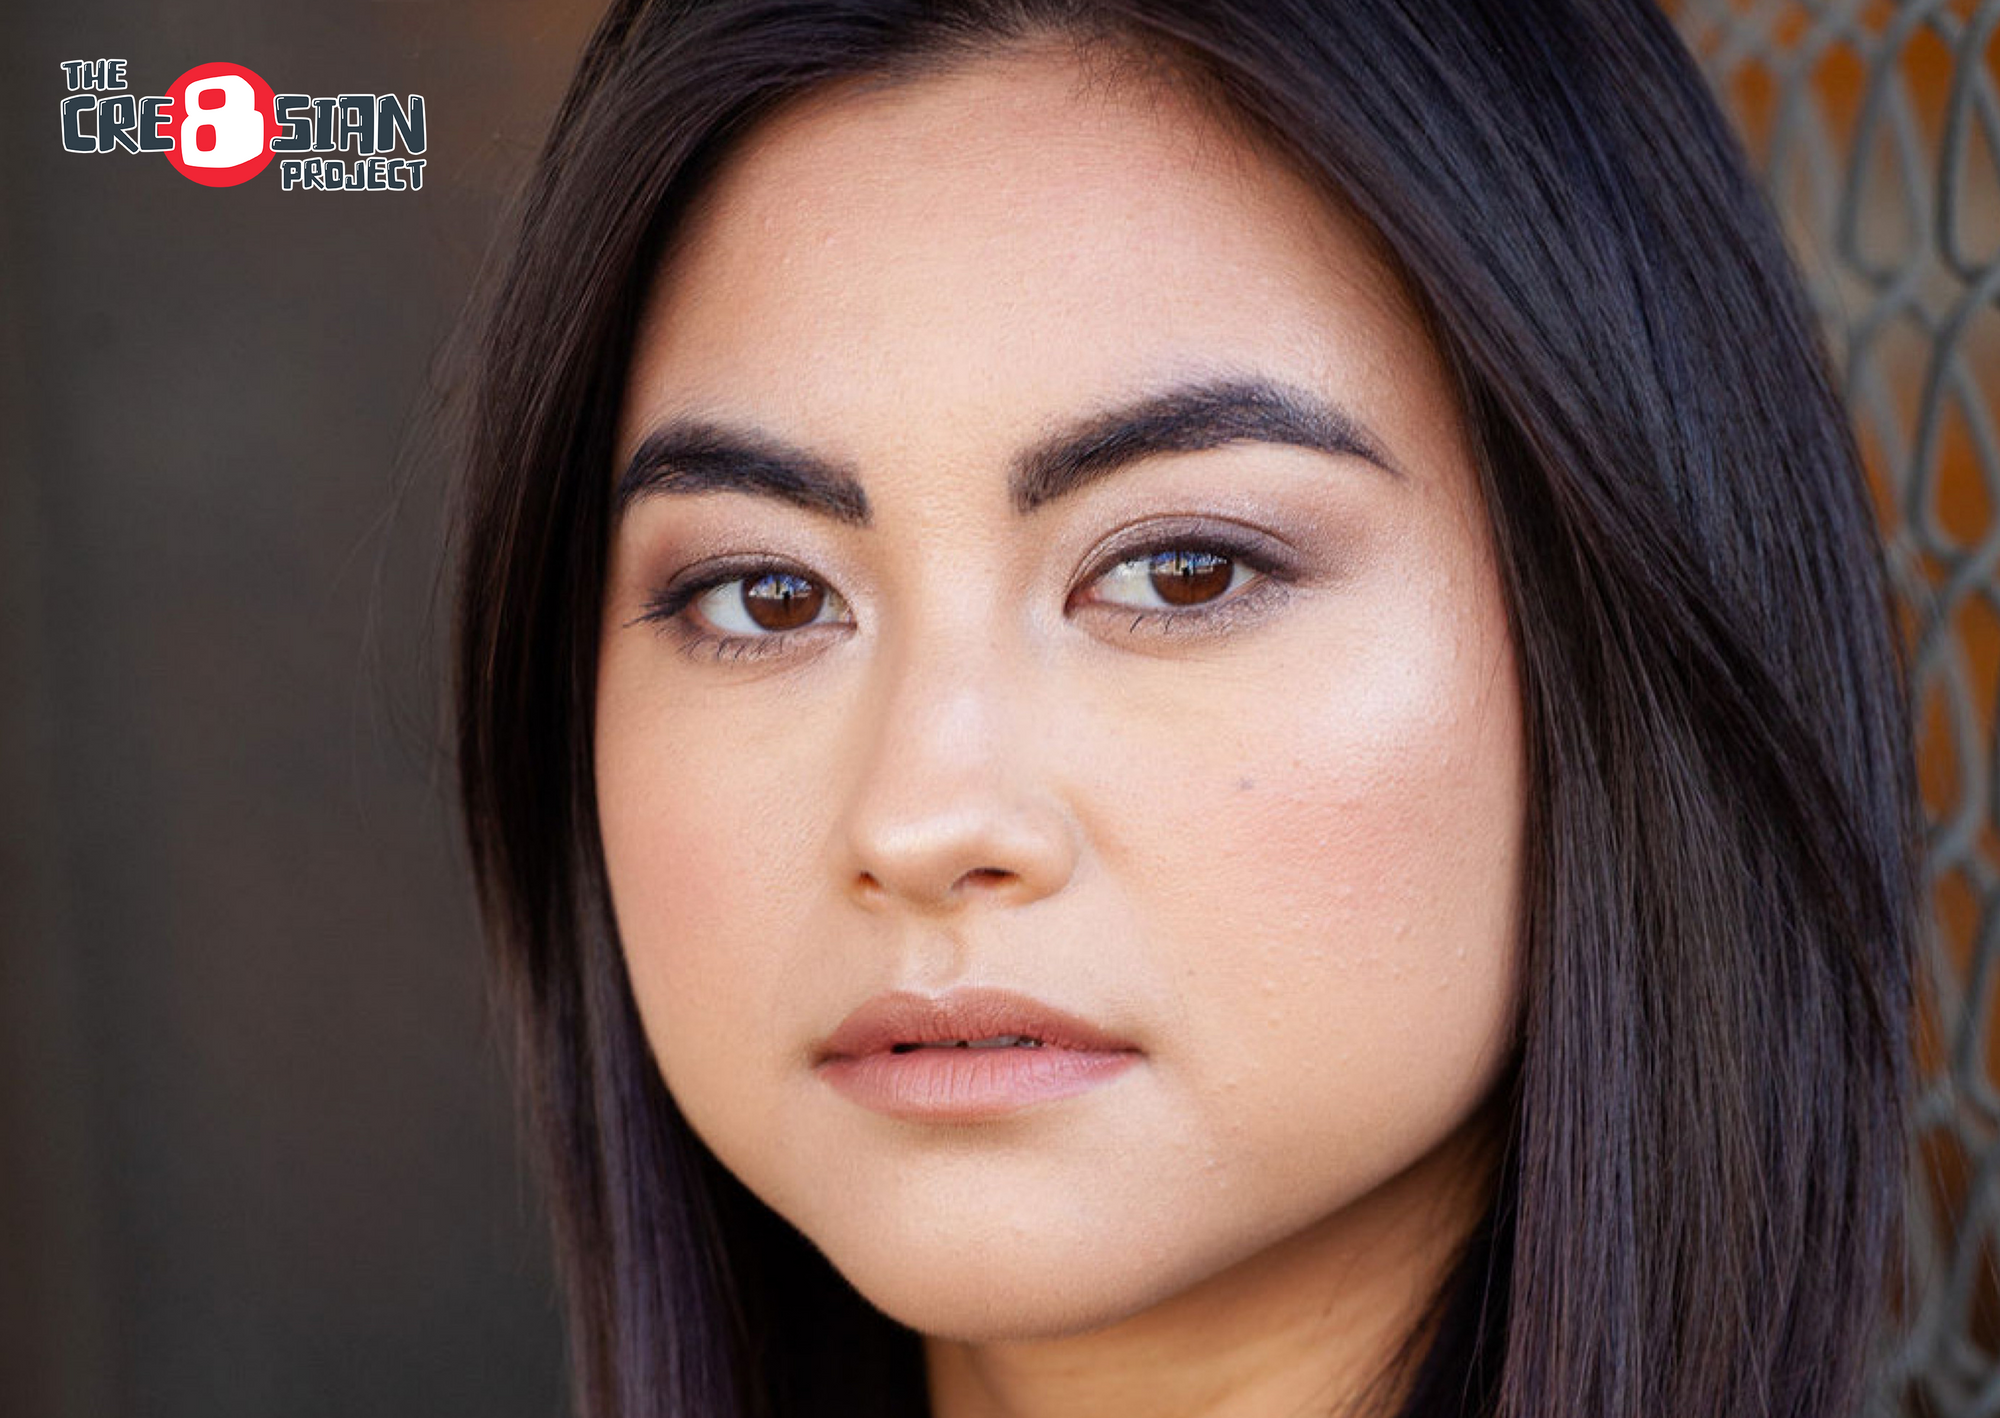 Amazing Asians in the Arts: Sierra Puett